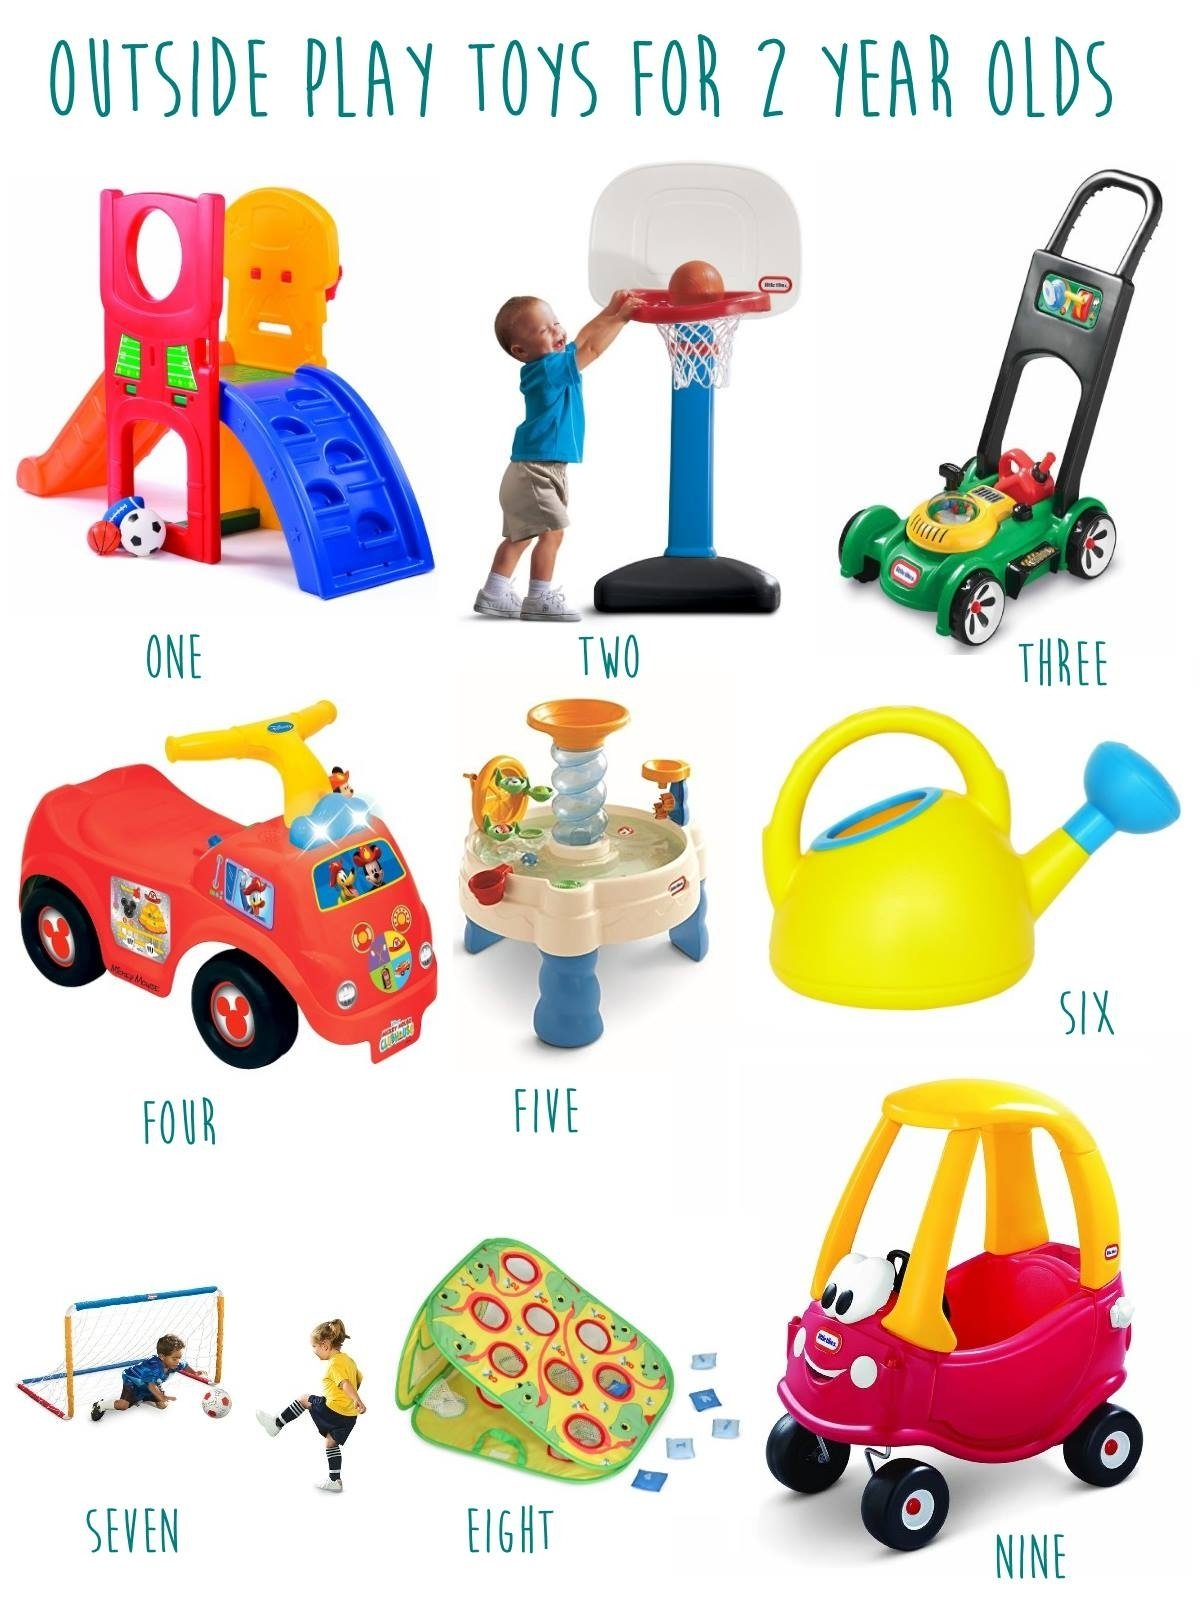 10 Perfect 2 Year Old Boy Gift Ideas best gifts for 2 year old boy mary martha mama 2021